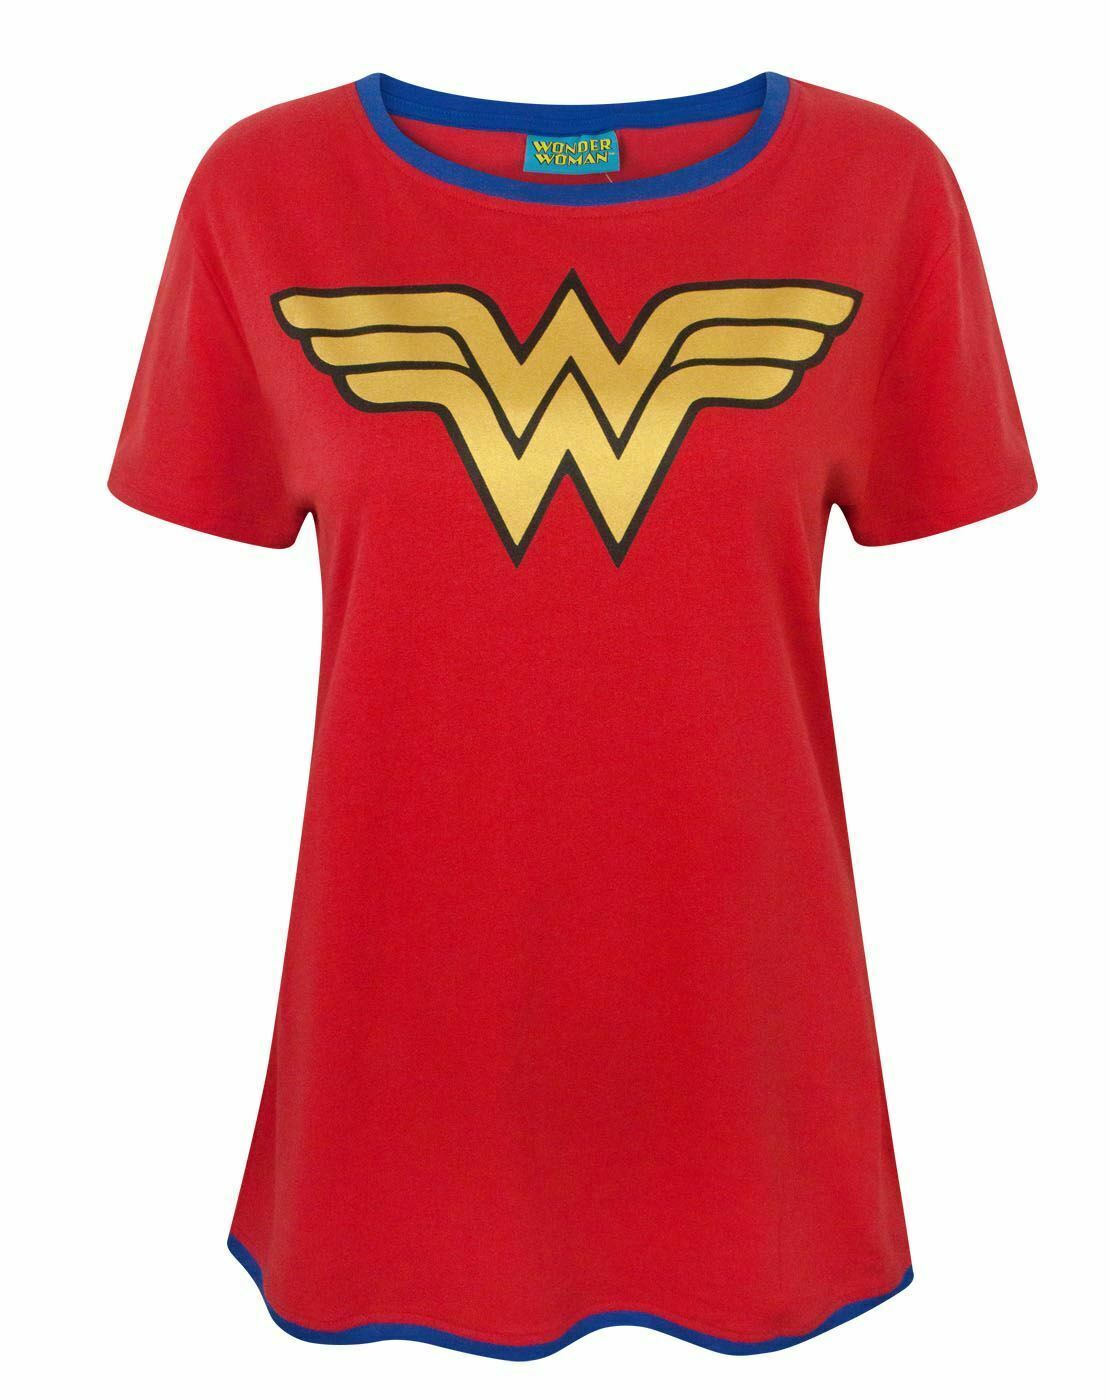 Wonder-Woman-DC-Comics-Metallic-Gold-Logo-Women-039-s-Red-Superhero-T-Shirt thumbnail 10